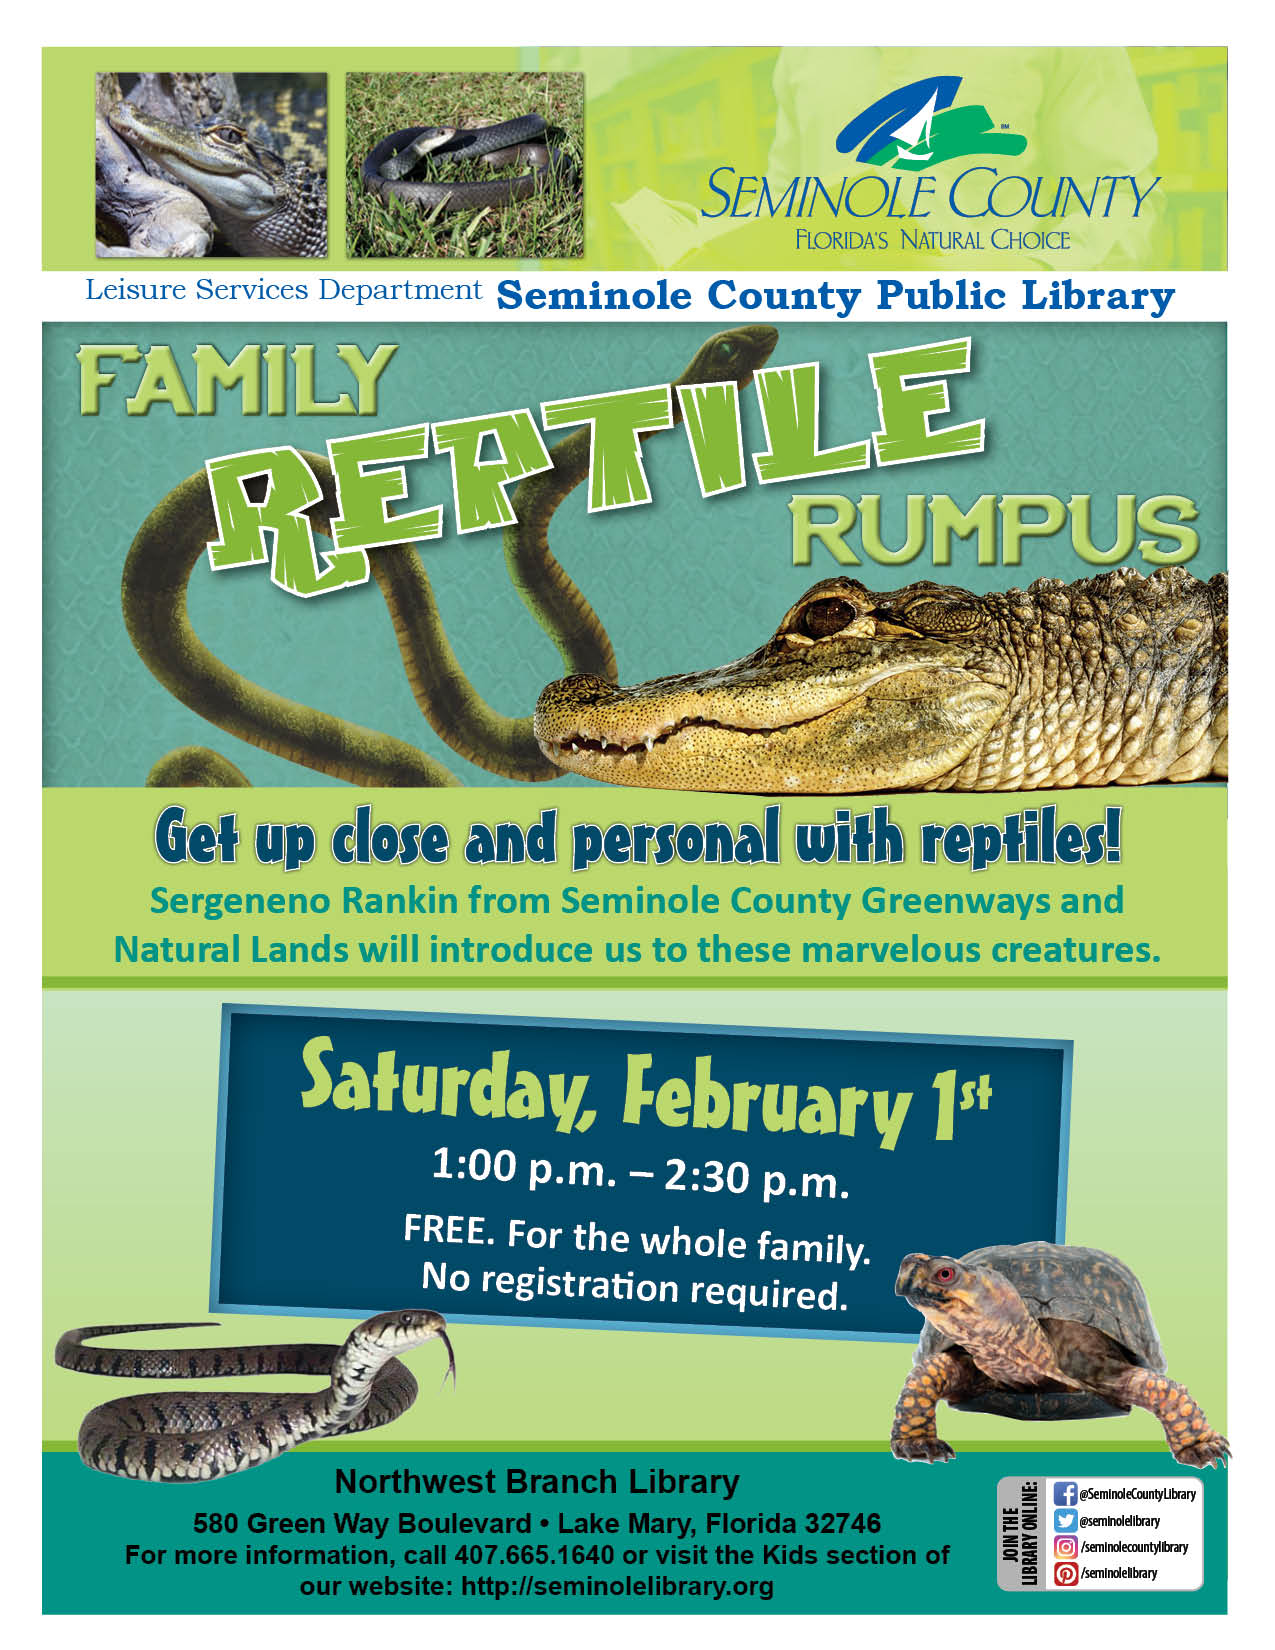 Northwest Branch Library Family Reptile Rumpus